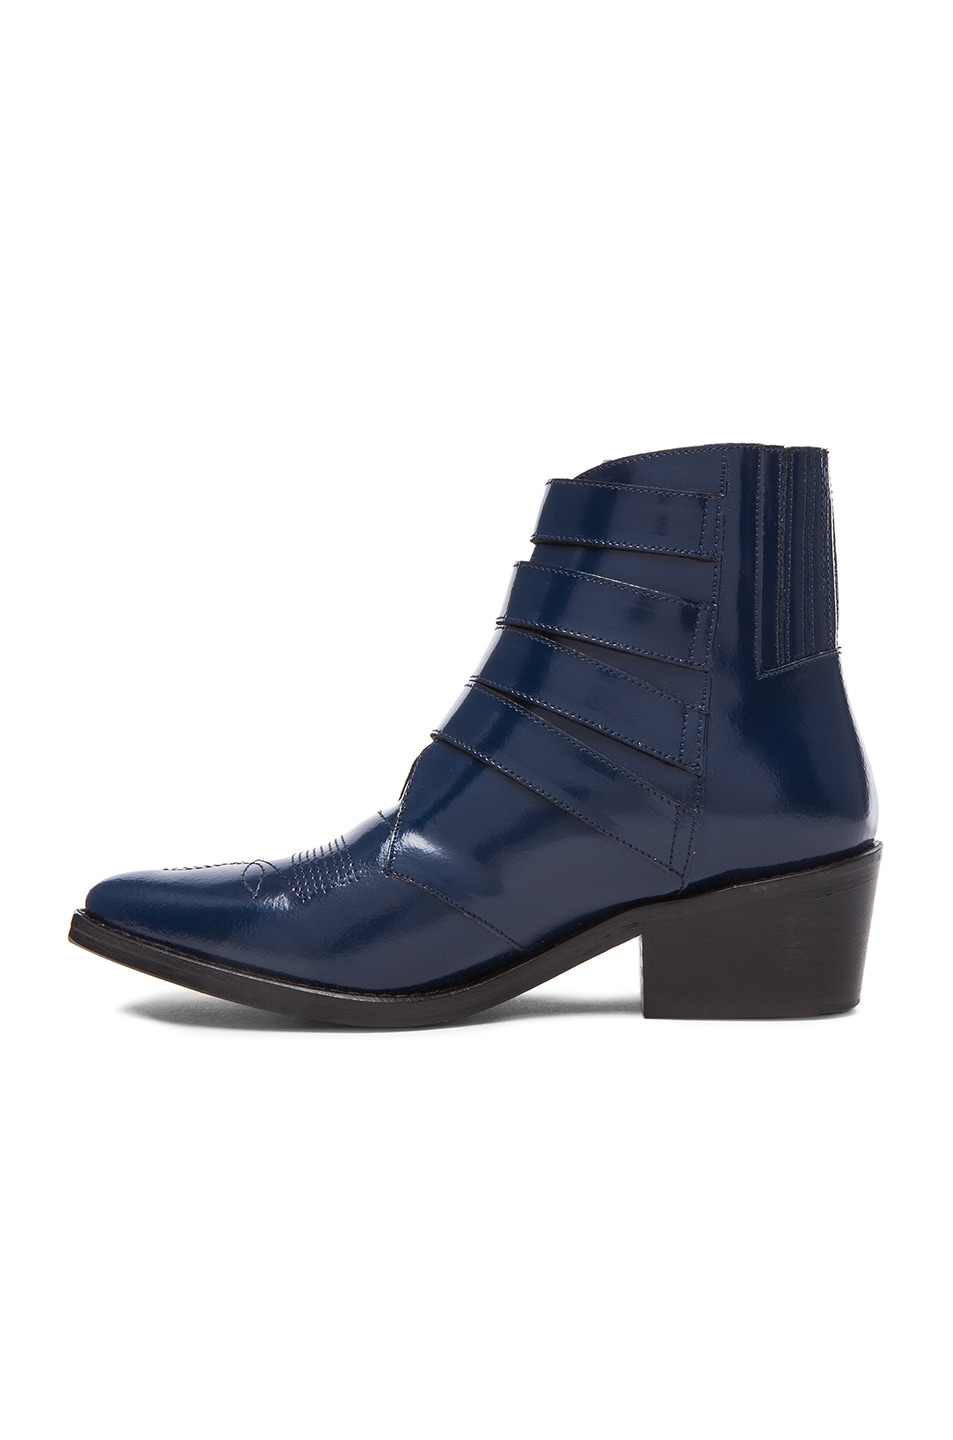 Image 5 of TOGA PULLA Leather Buckle Booties in Navy